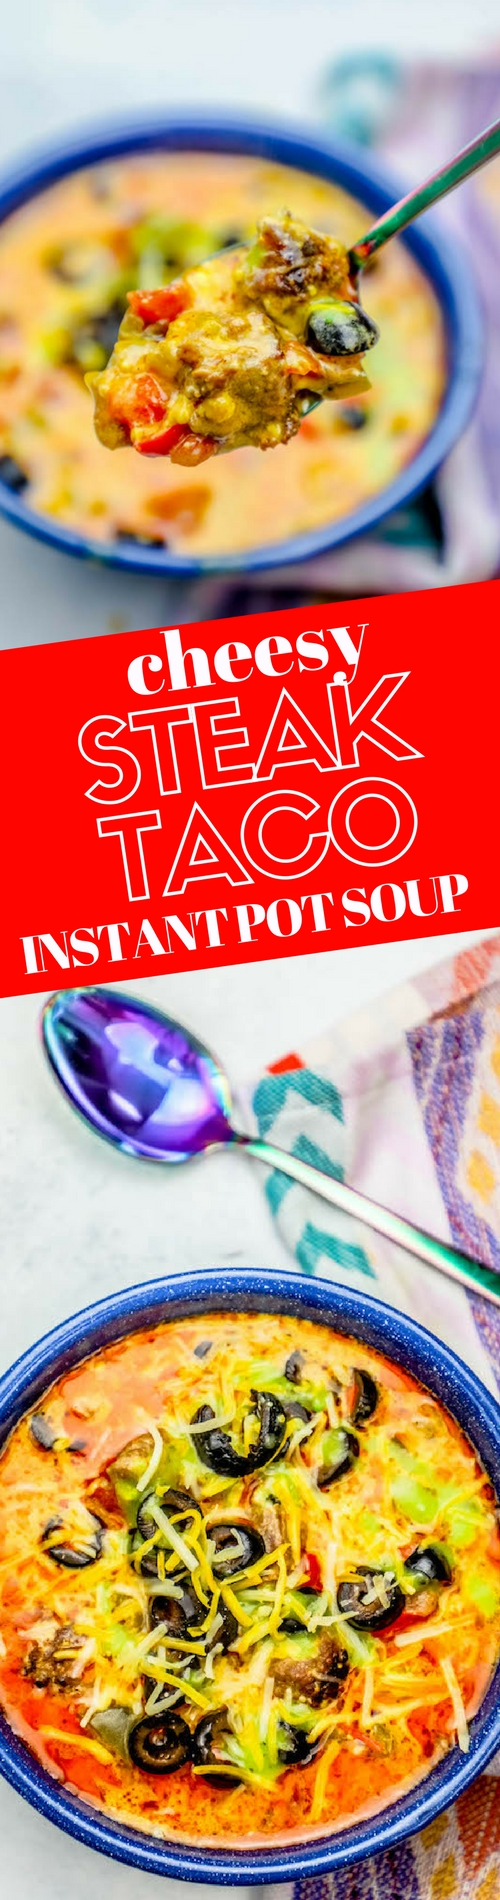 how to cook flank steak in instant pot